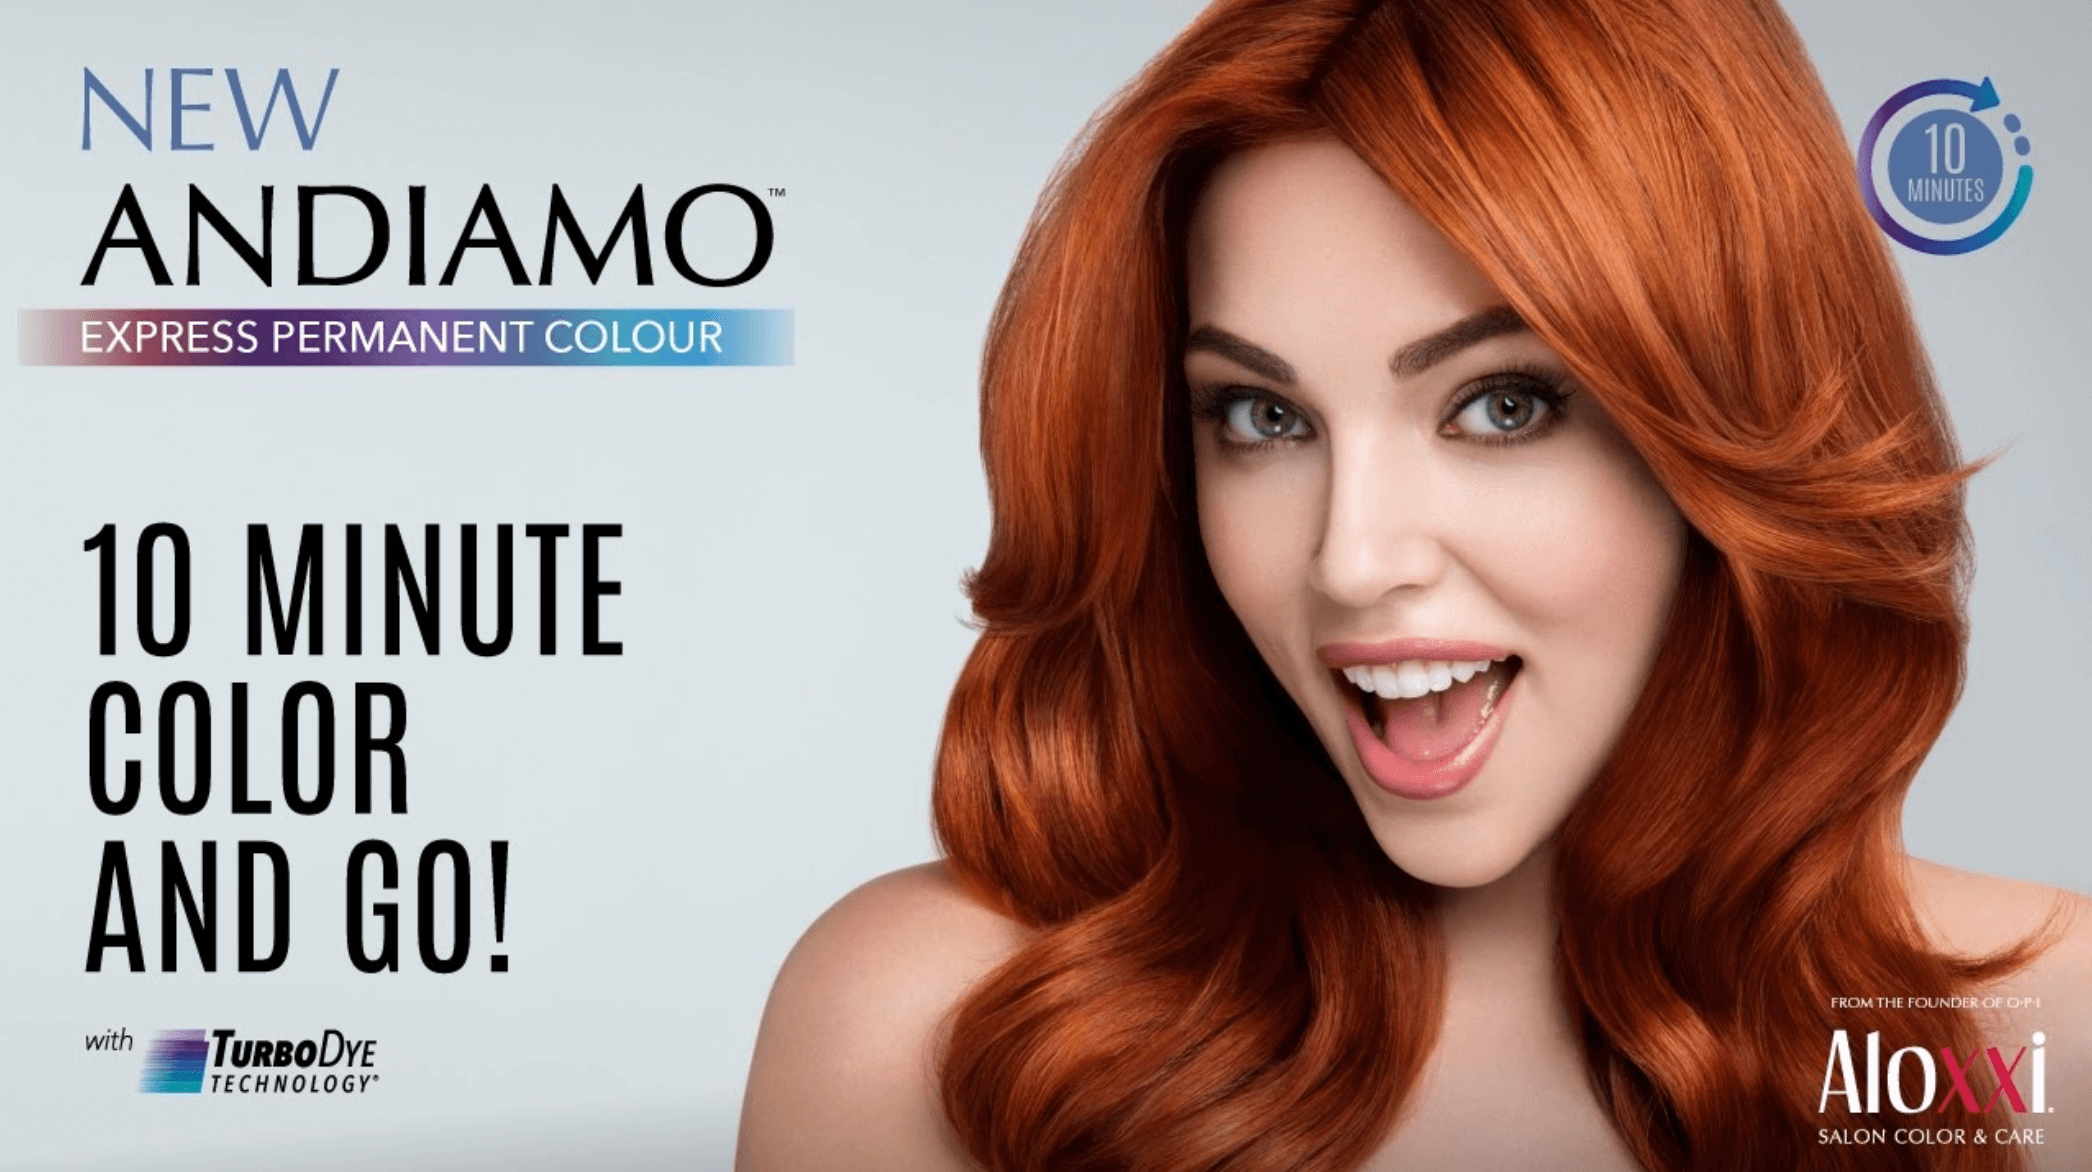 Aloxxi Andiamo Express 10 Minute Color Service Taming Of The Do